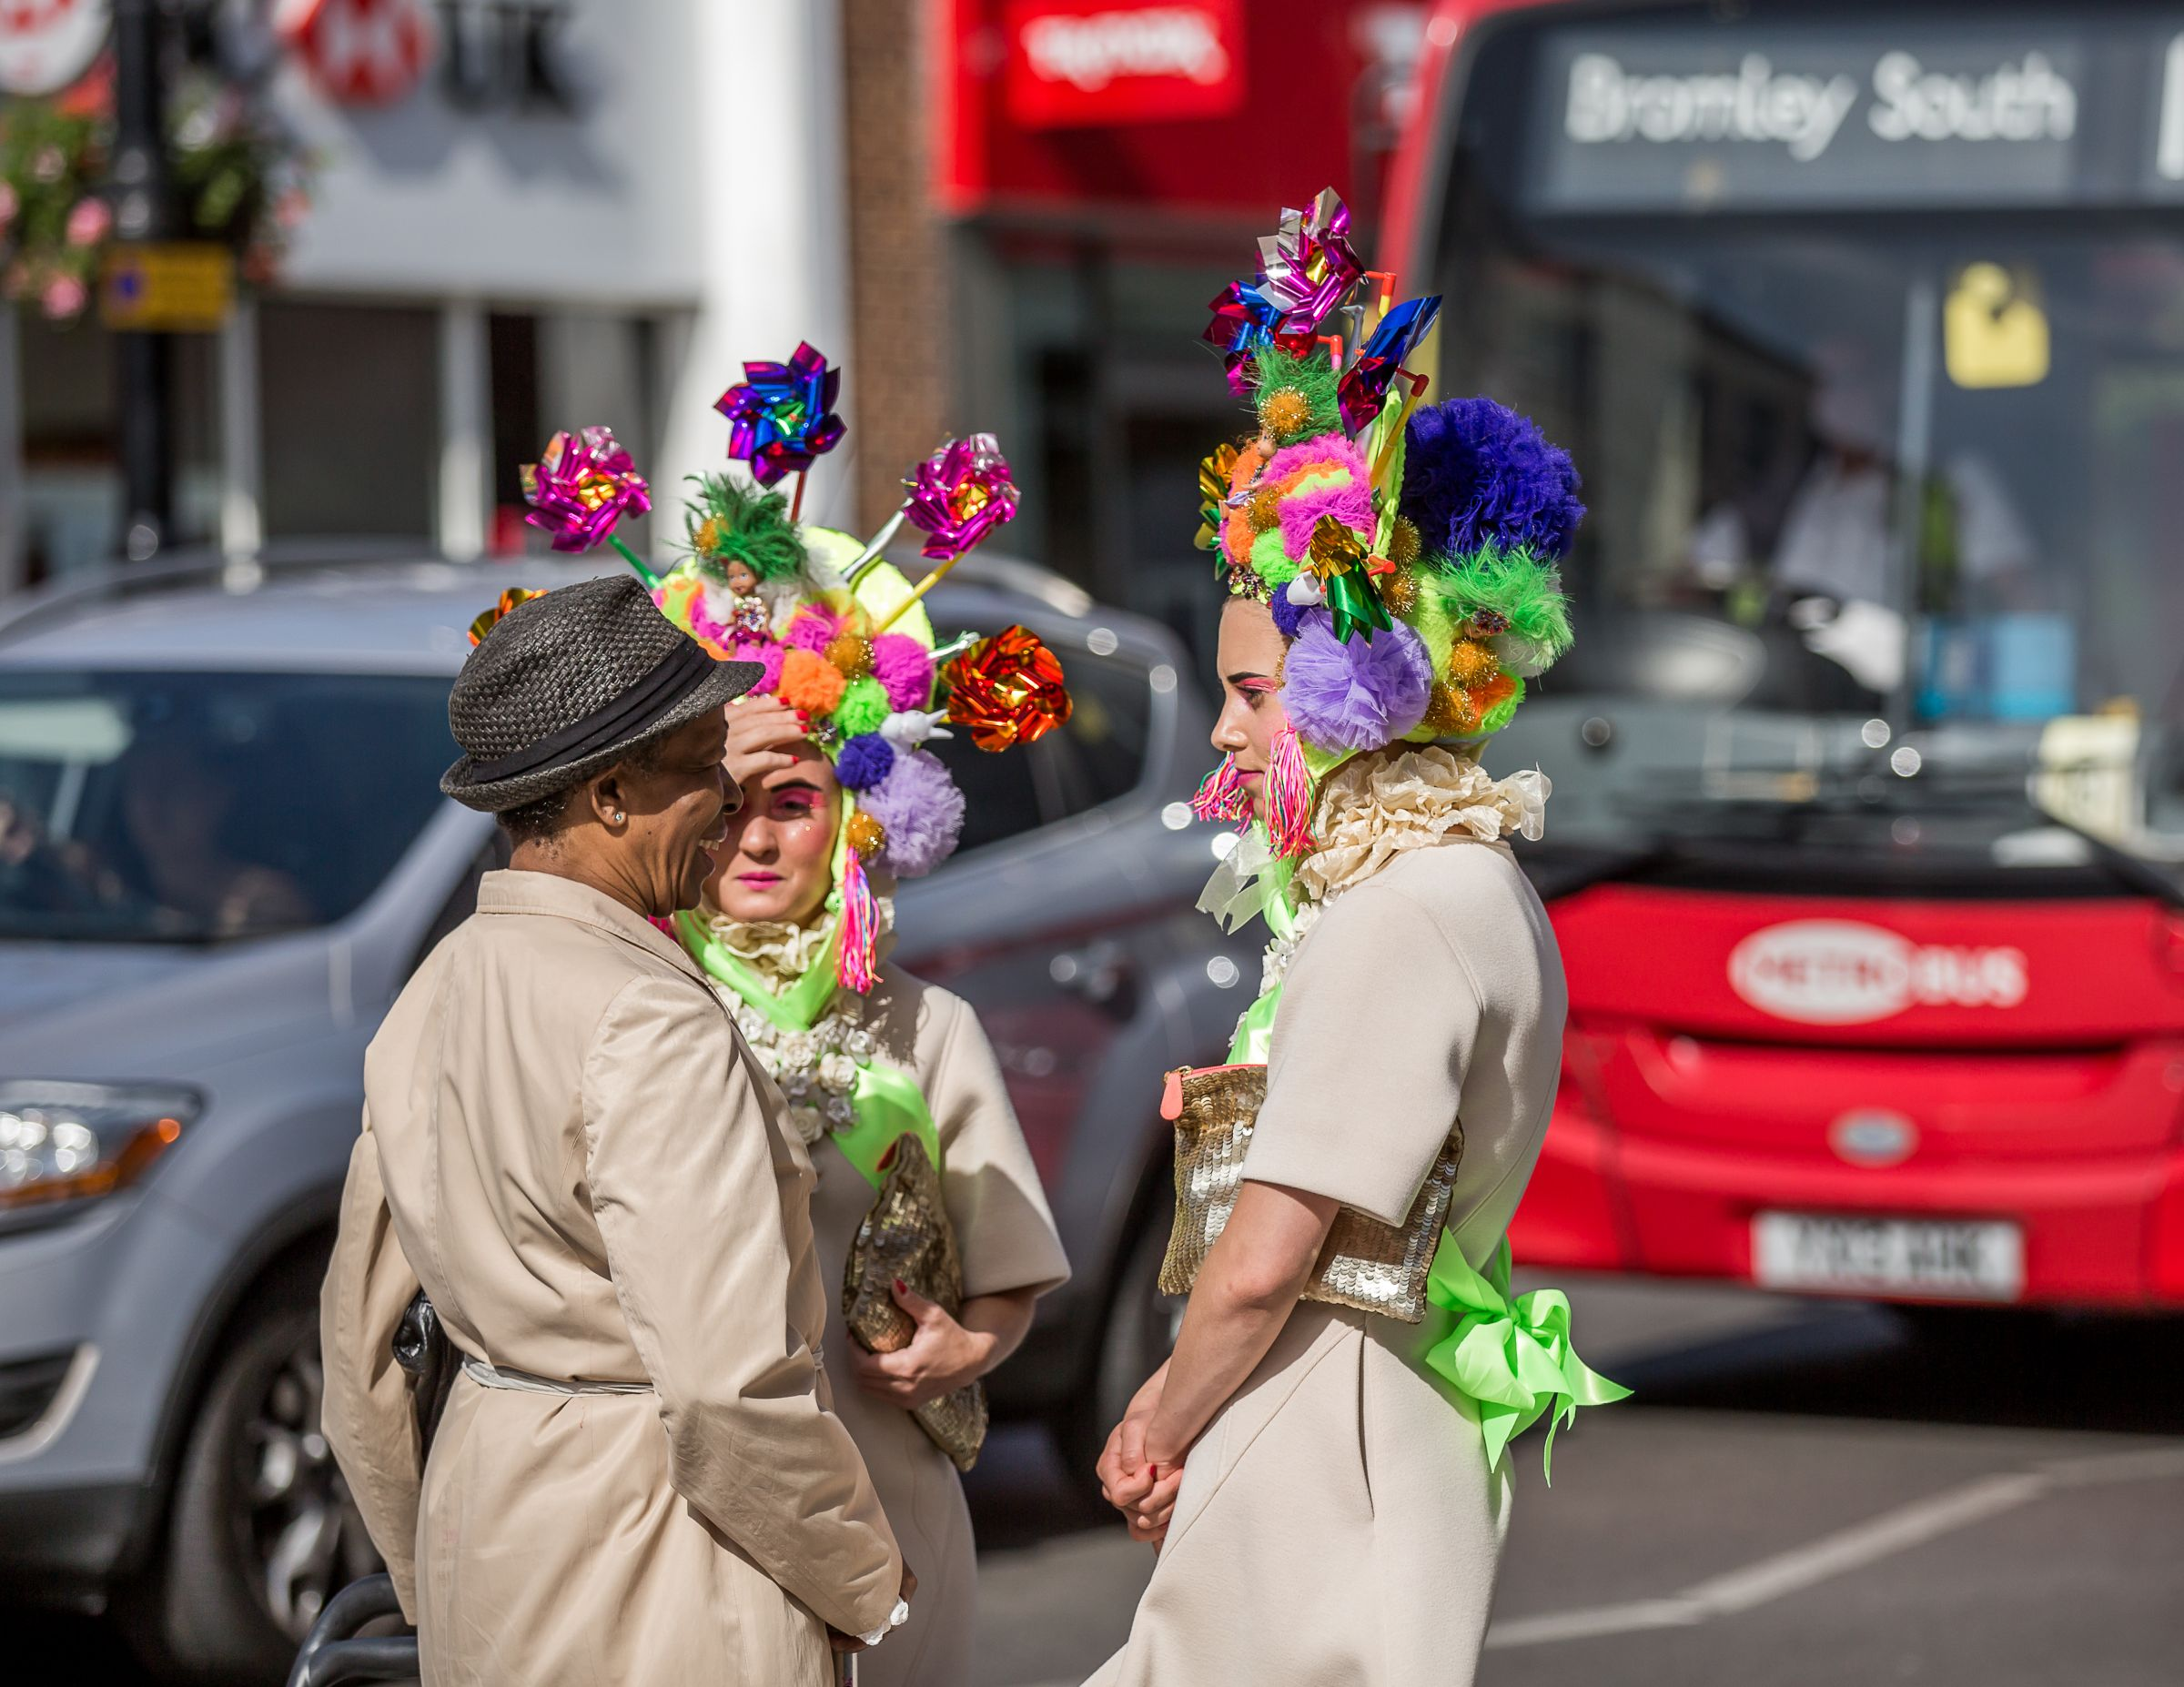 Two performers in elaborate costumes speak to a pedestrian